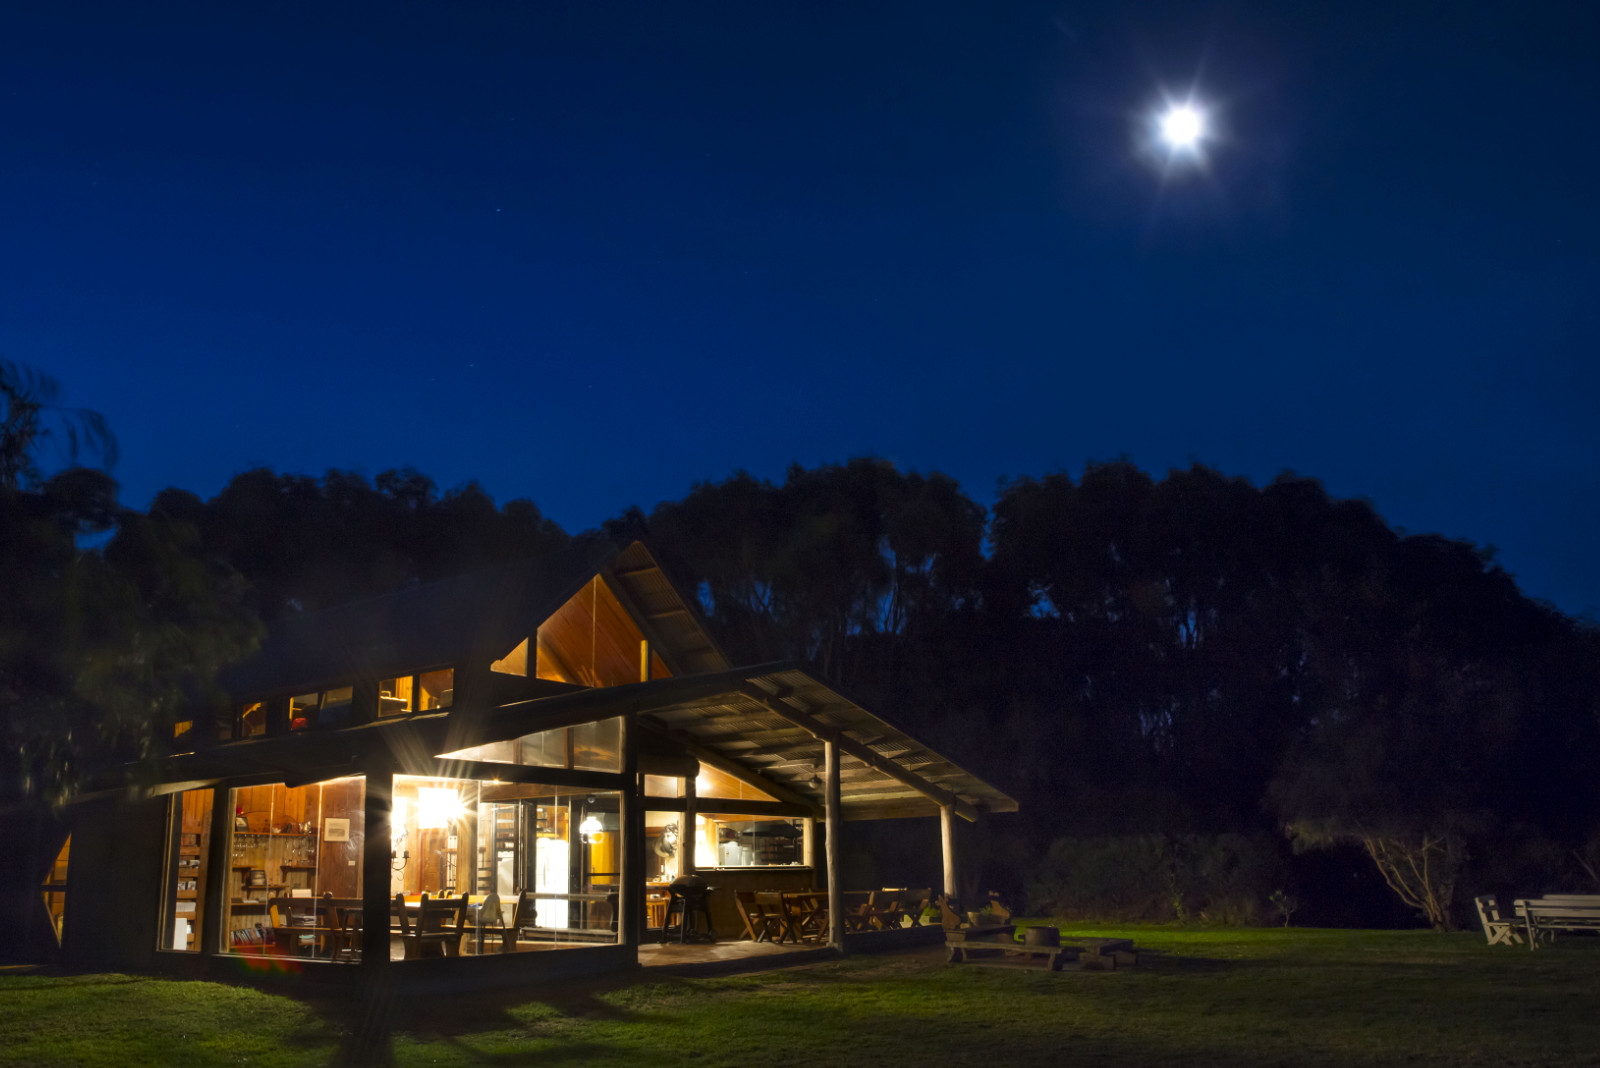 Wirrega barn accommodation at night